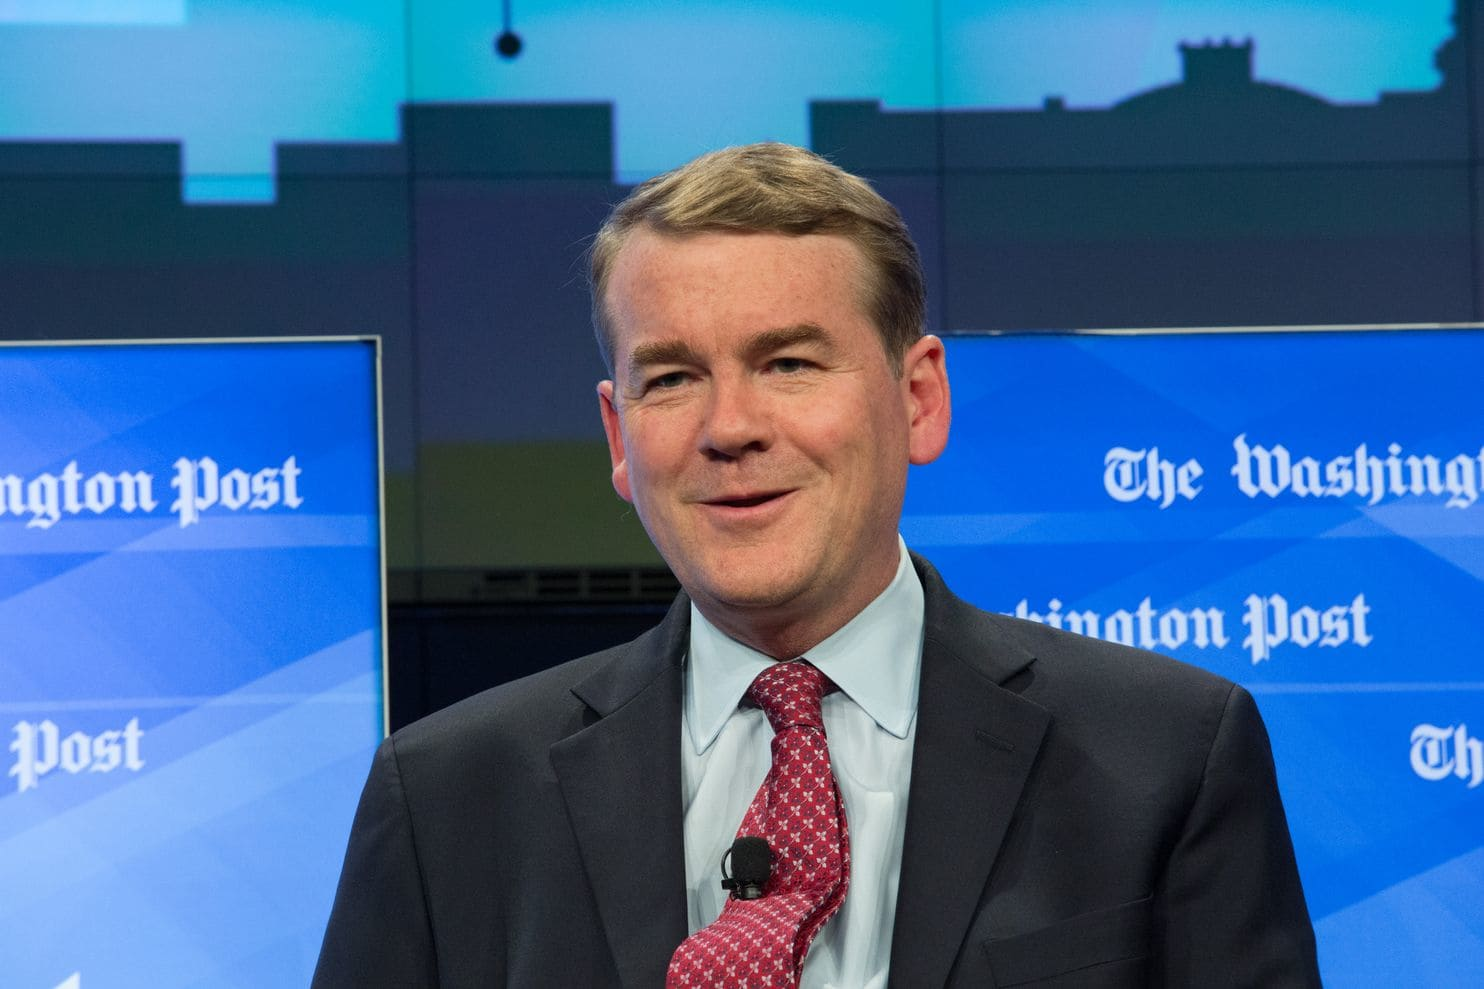 US Democratic senator Bennet joins crowded presidential race